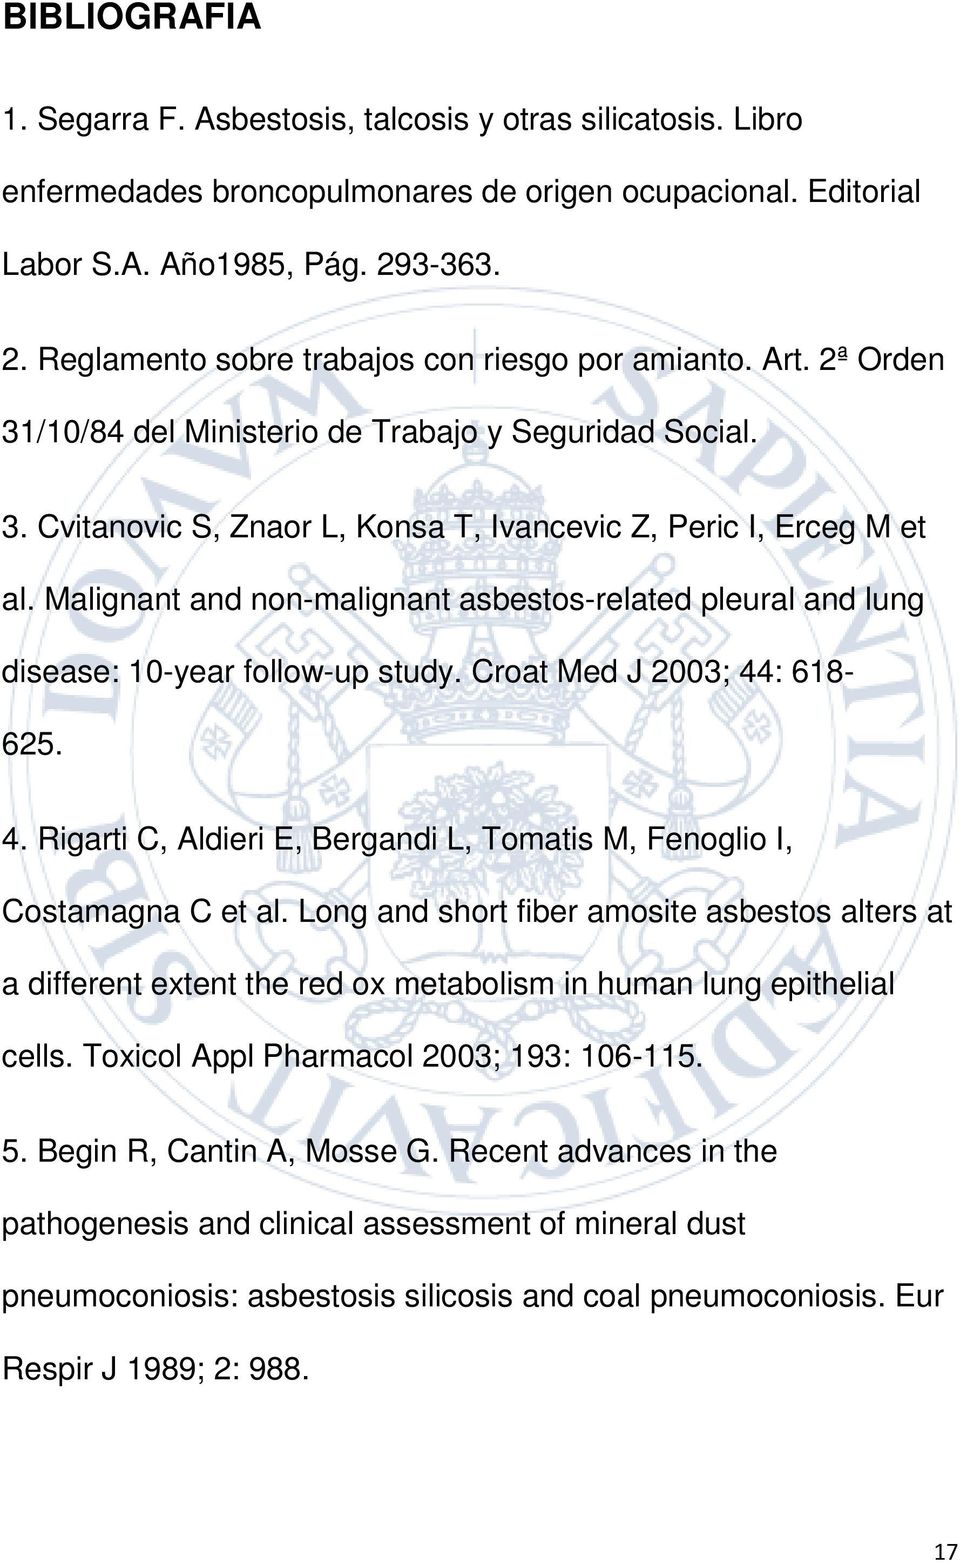 Malignant and non-malignant asbestos-related pleural and lung disease: 0-year follow-up study. Croat Med J 2003; 44: 68-625. 4. Rigarti C, Aldieri E, Bergandi L, Tomatis M, Fenoglio I, Costamagna C et al.